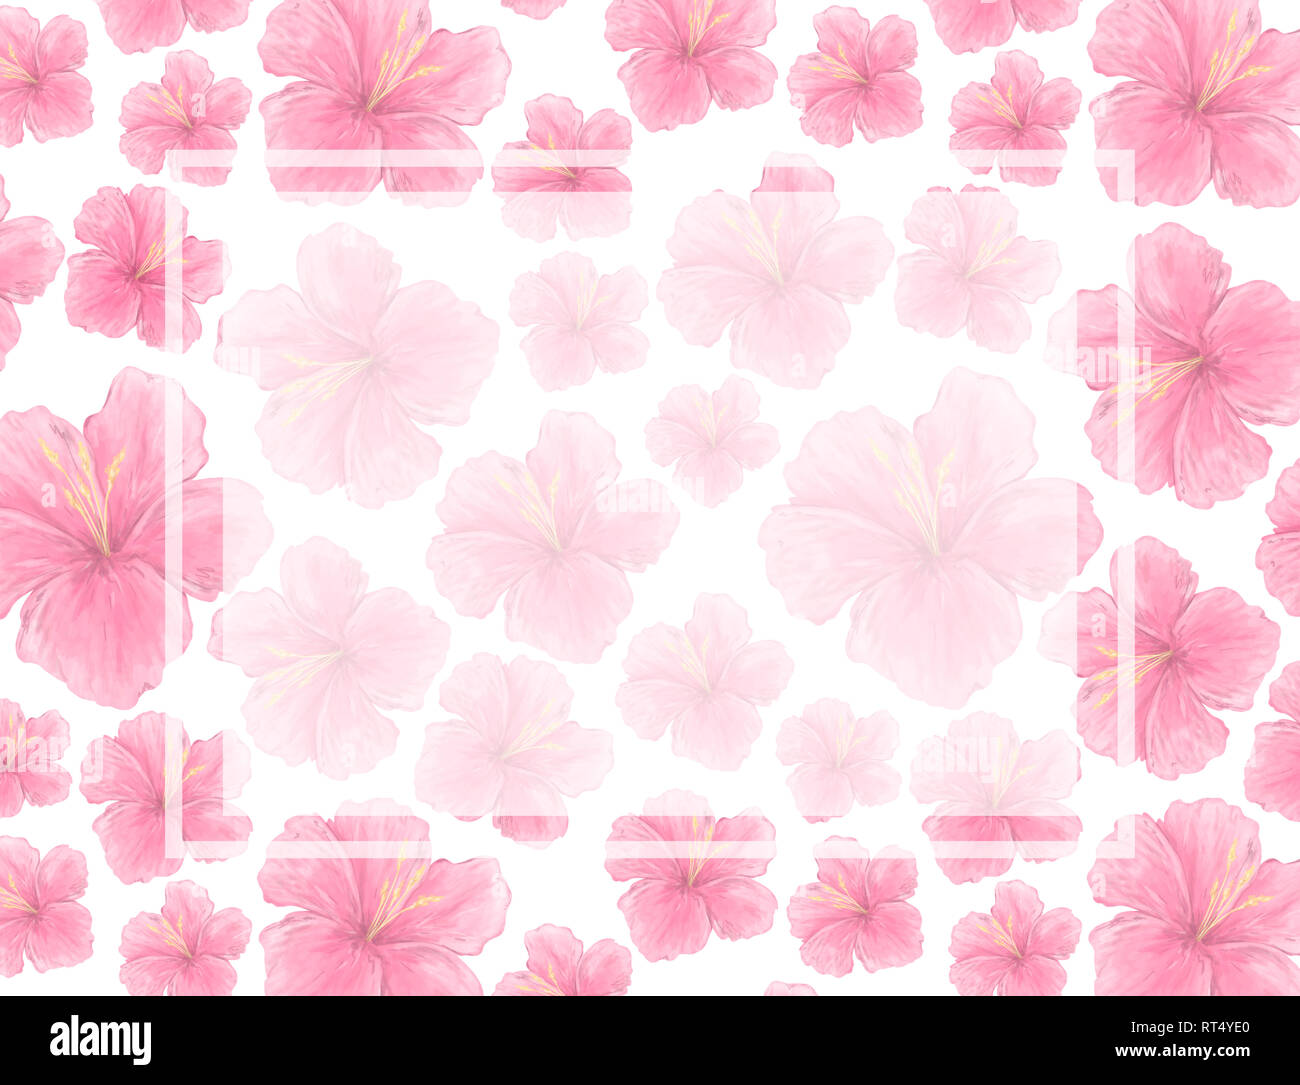 Watercolor Pink Flowers Blossoms Background Wedding Card